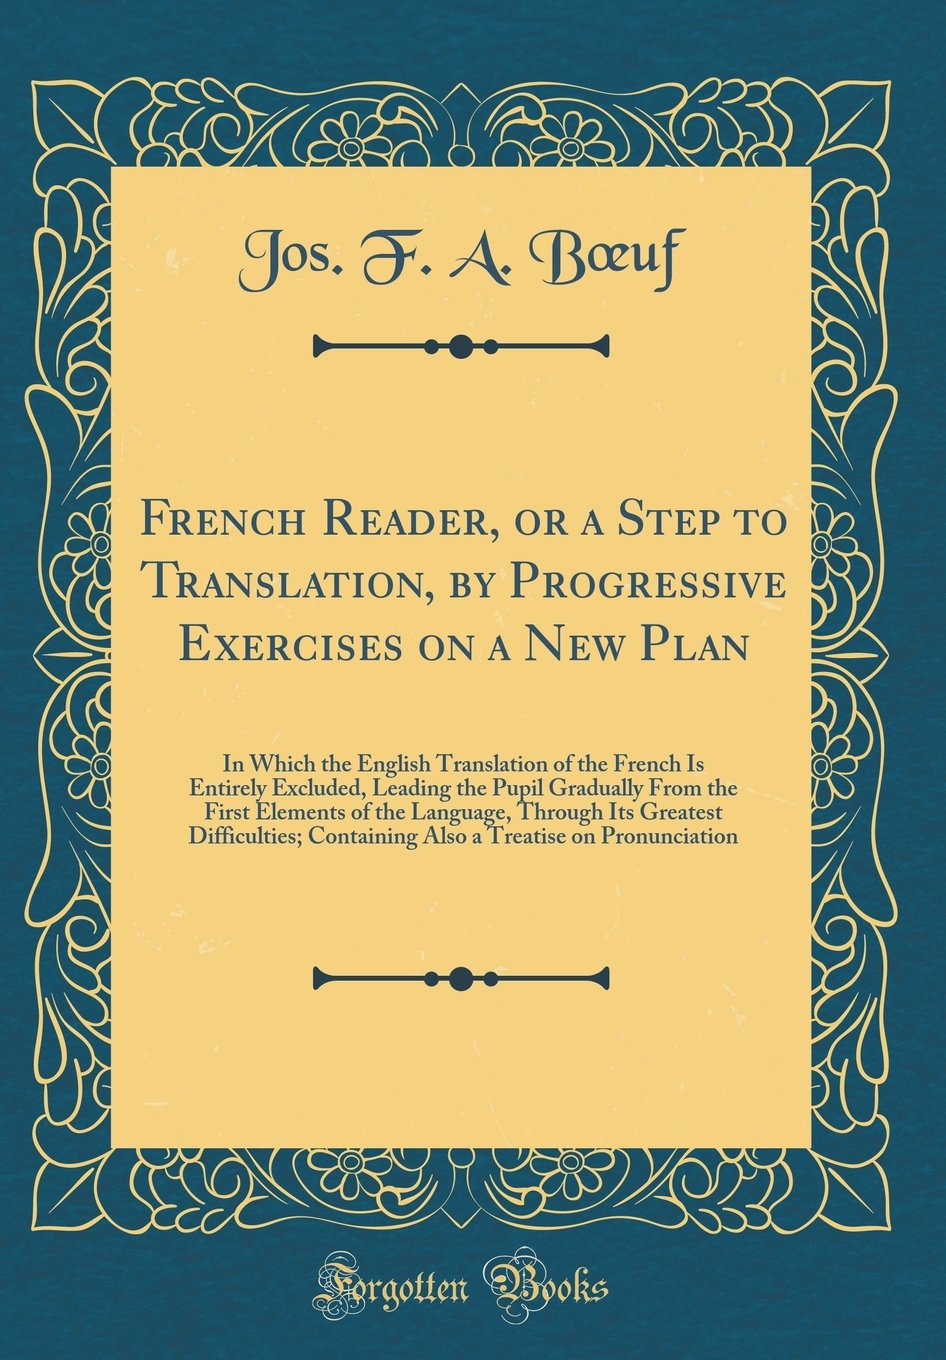 Download French Reader, or a Step to Translation, by Progressive Exercises on a New Plan: In Which the English Translation of the French Is Entirely Excluded, ... Through Its Greatest Difficulties; C pdf epub